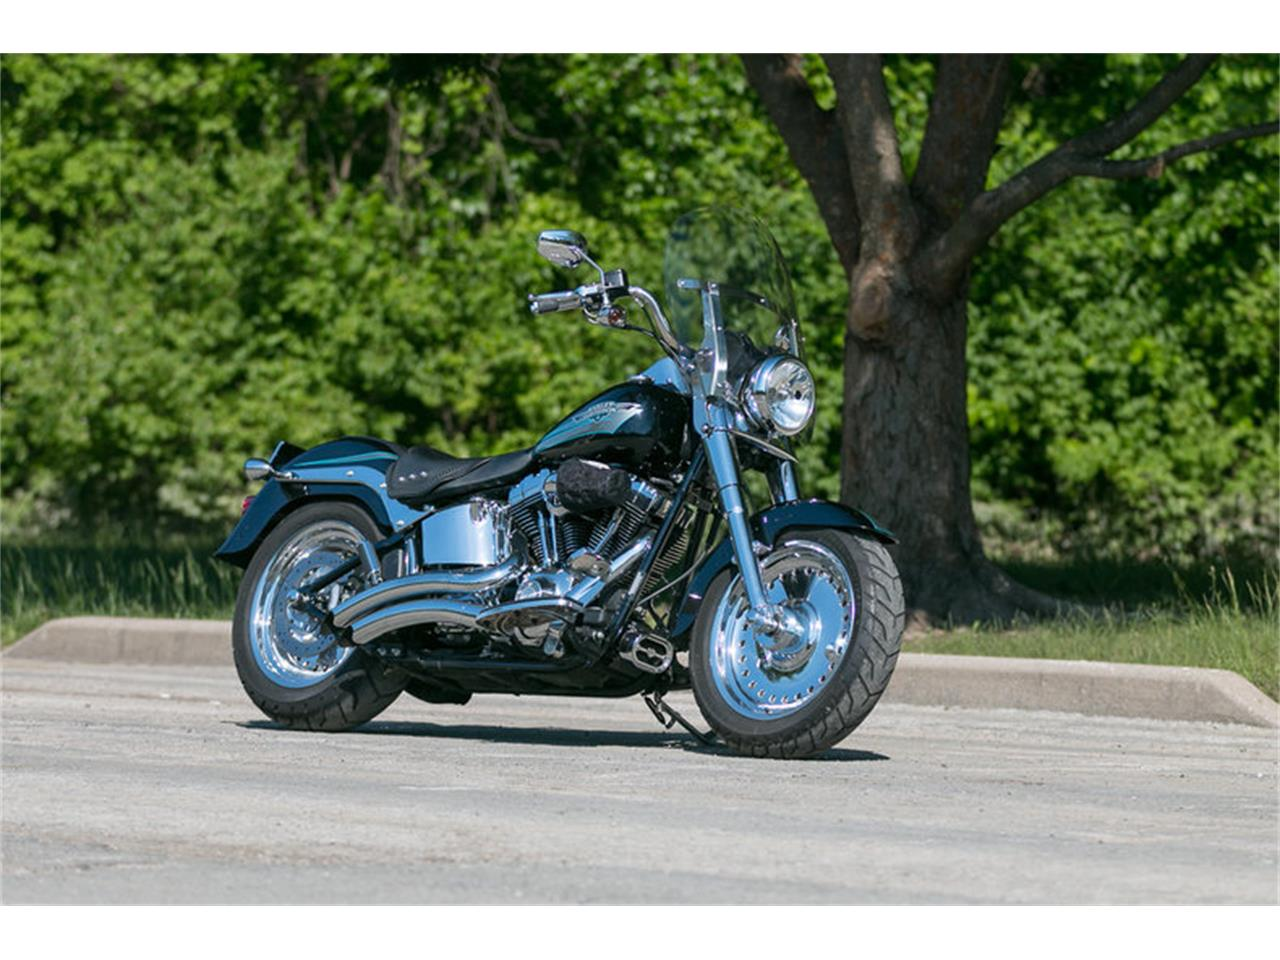 Large Picture of 2009 Fat Boy located in Missouri Offered by Fast Lane Classic Cars Inc. - L5P2